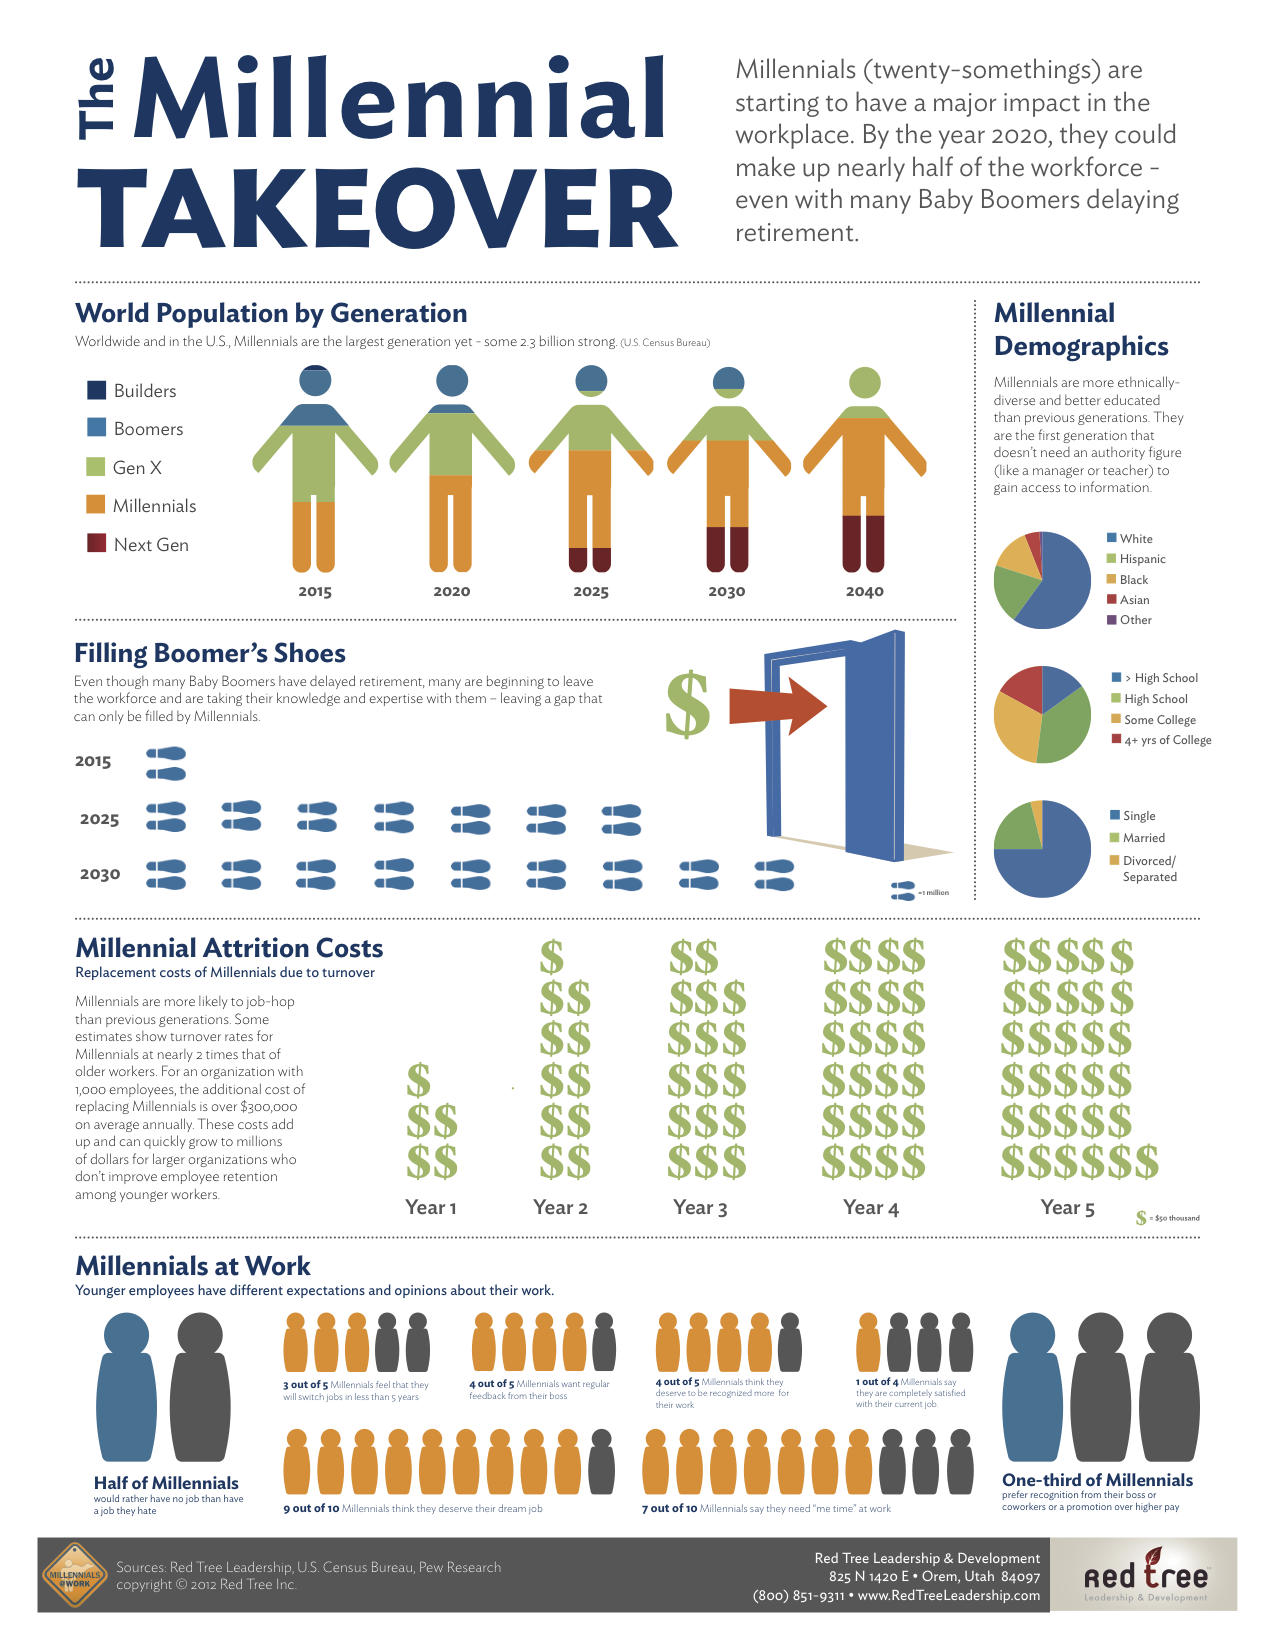 Millennial-Takeover-Infographic